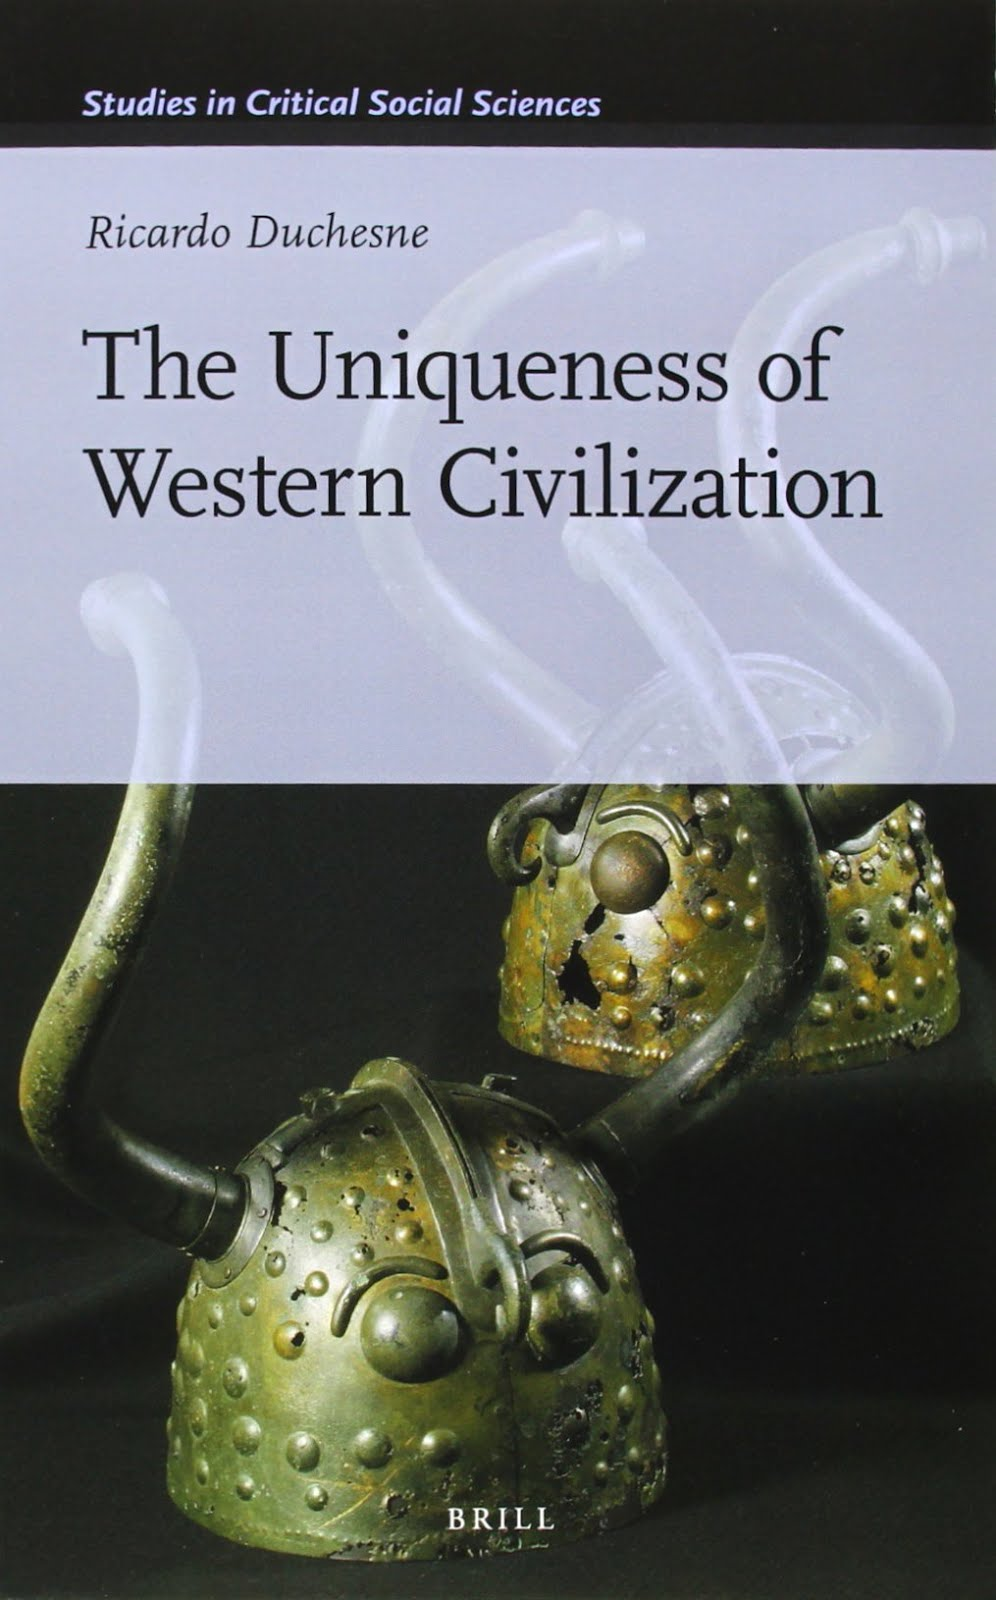 The Uniqueness of Western Civilization